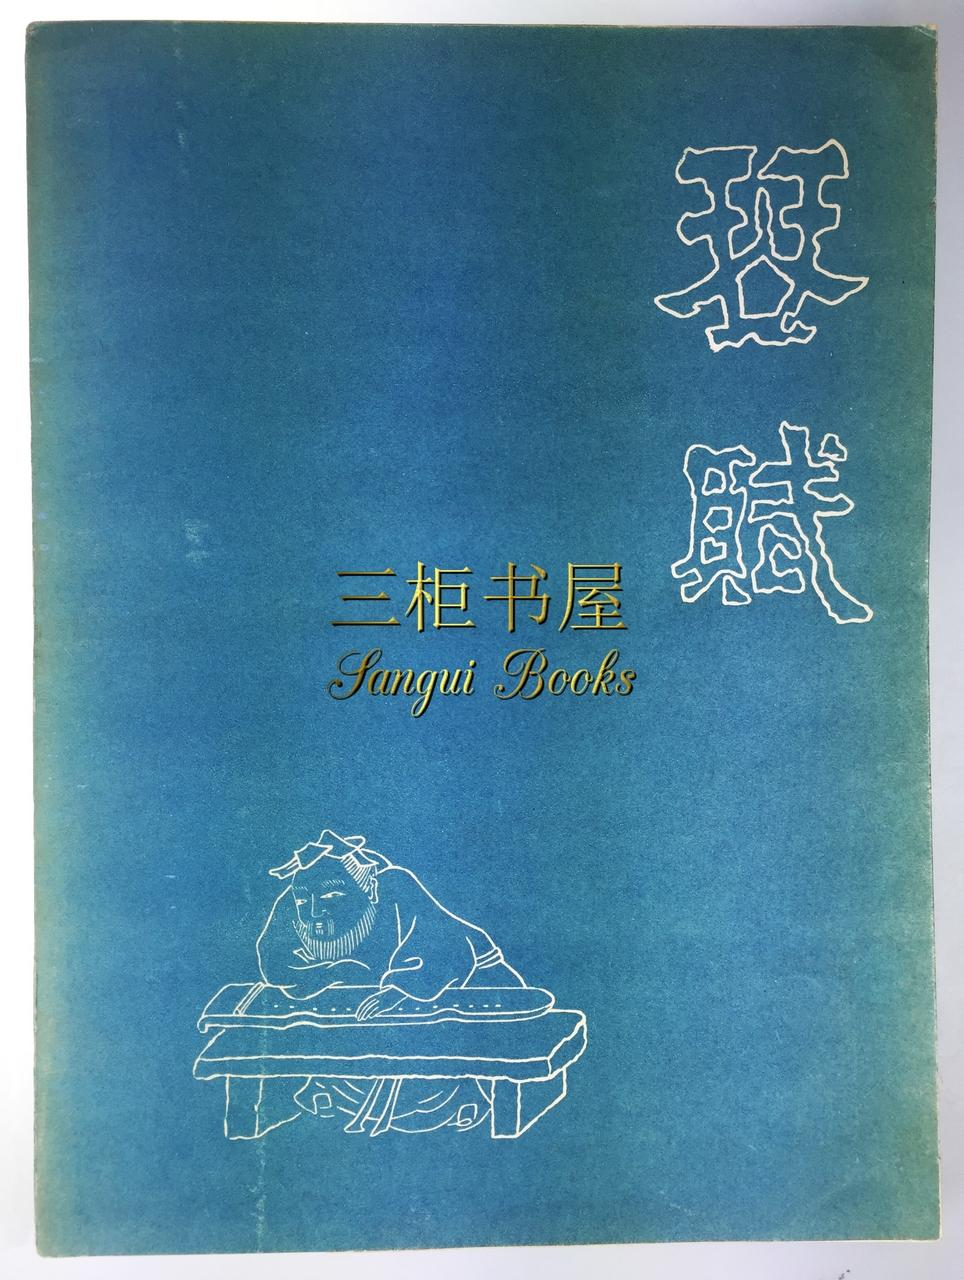 hsi k ang and his poetical essay on the lute original first hsi k ang and his poetical essay on the lute original first edition